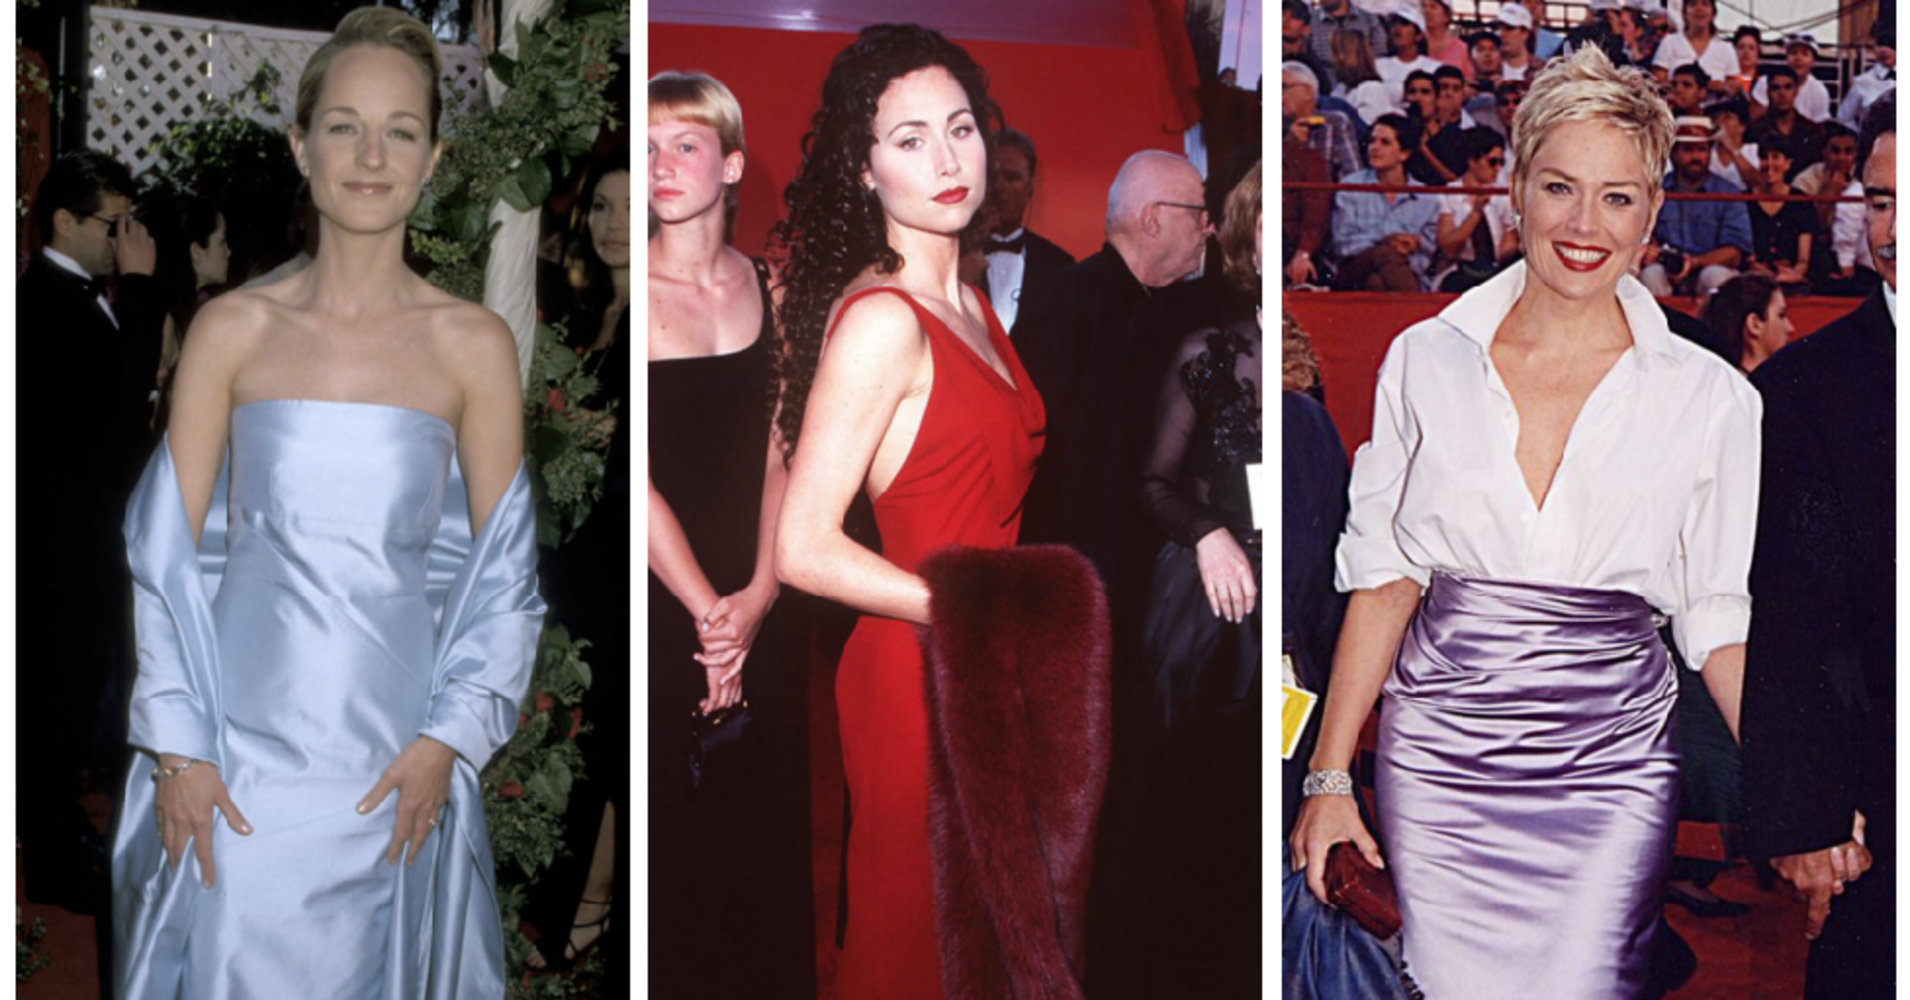 These Photos Show What The Oscars Looked Like In 1998